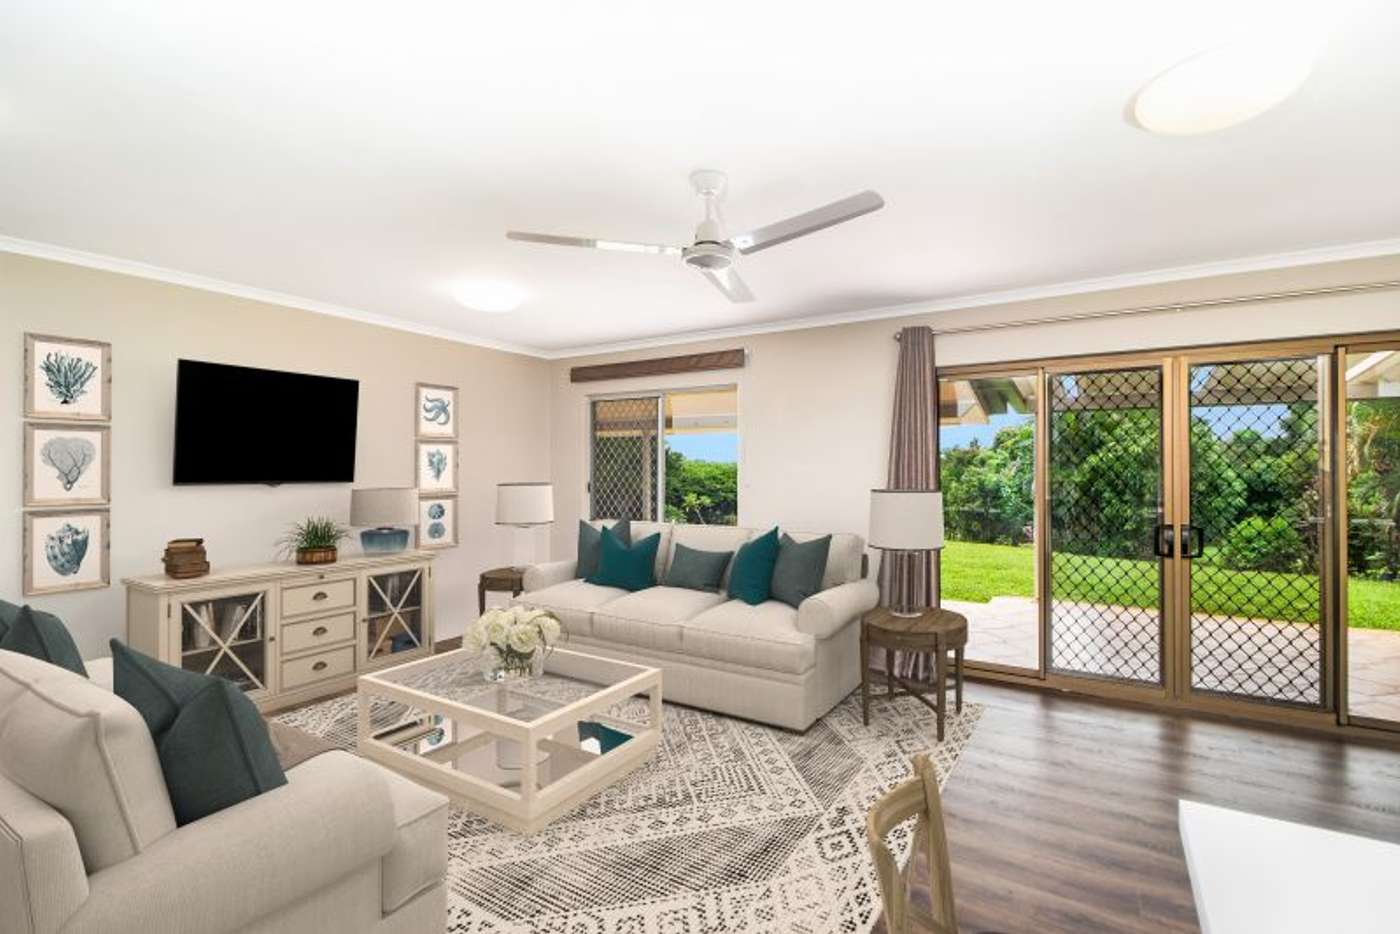 Main view of Homely house listing, 8 Coolibah Close, Yungaburra QLD 4884